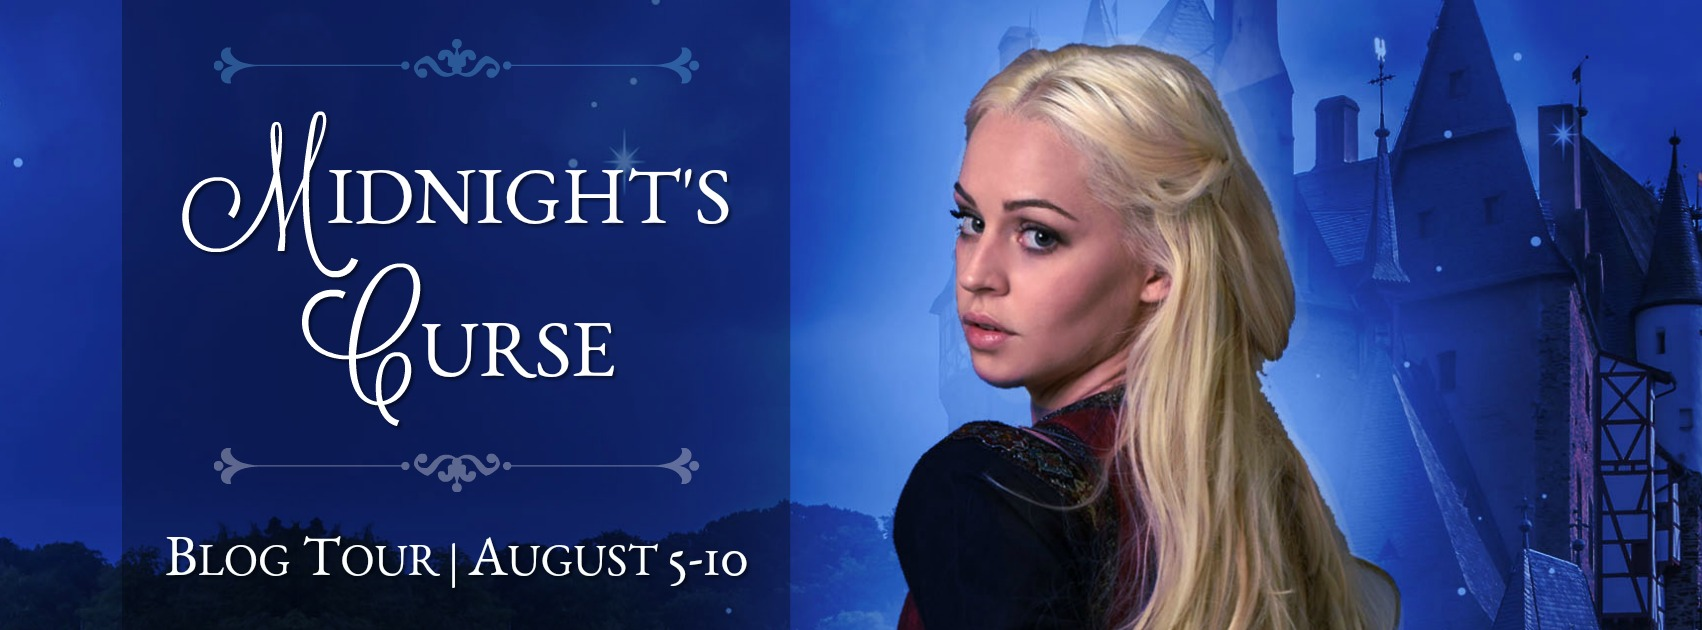 Midnight's Curse Blog Tour Mock-Up